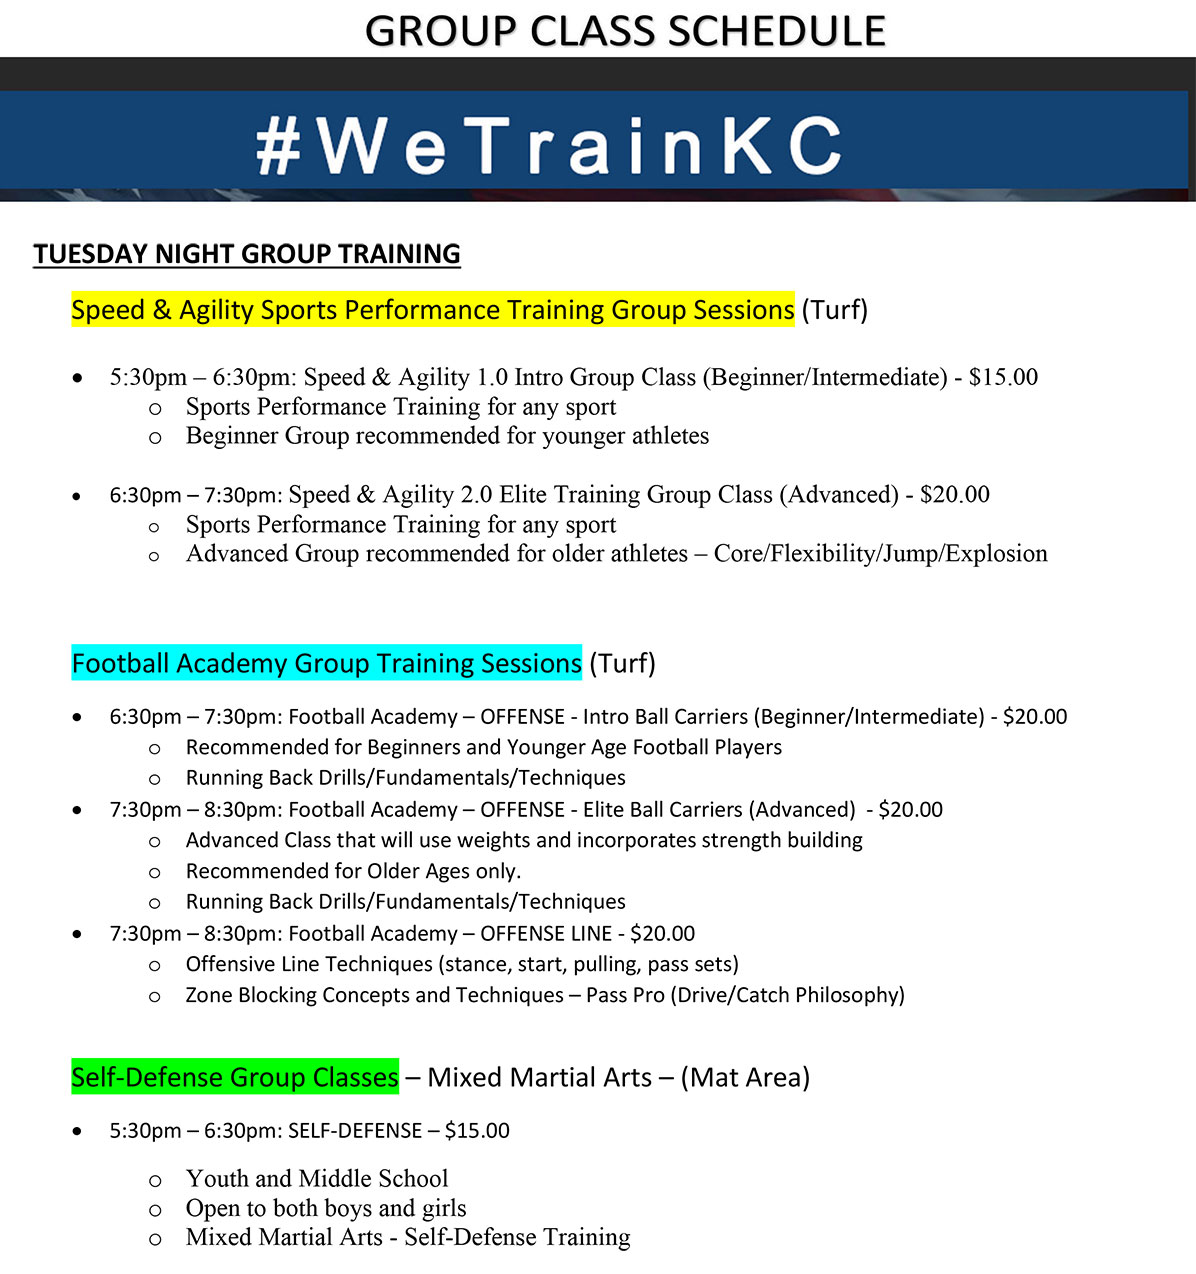 Tuesday Night Group Class Training Schedule at Kansas City Athlete Training in Kansas City Missouri offering Sports Performance Training for girls and boys youth, middle school and high school